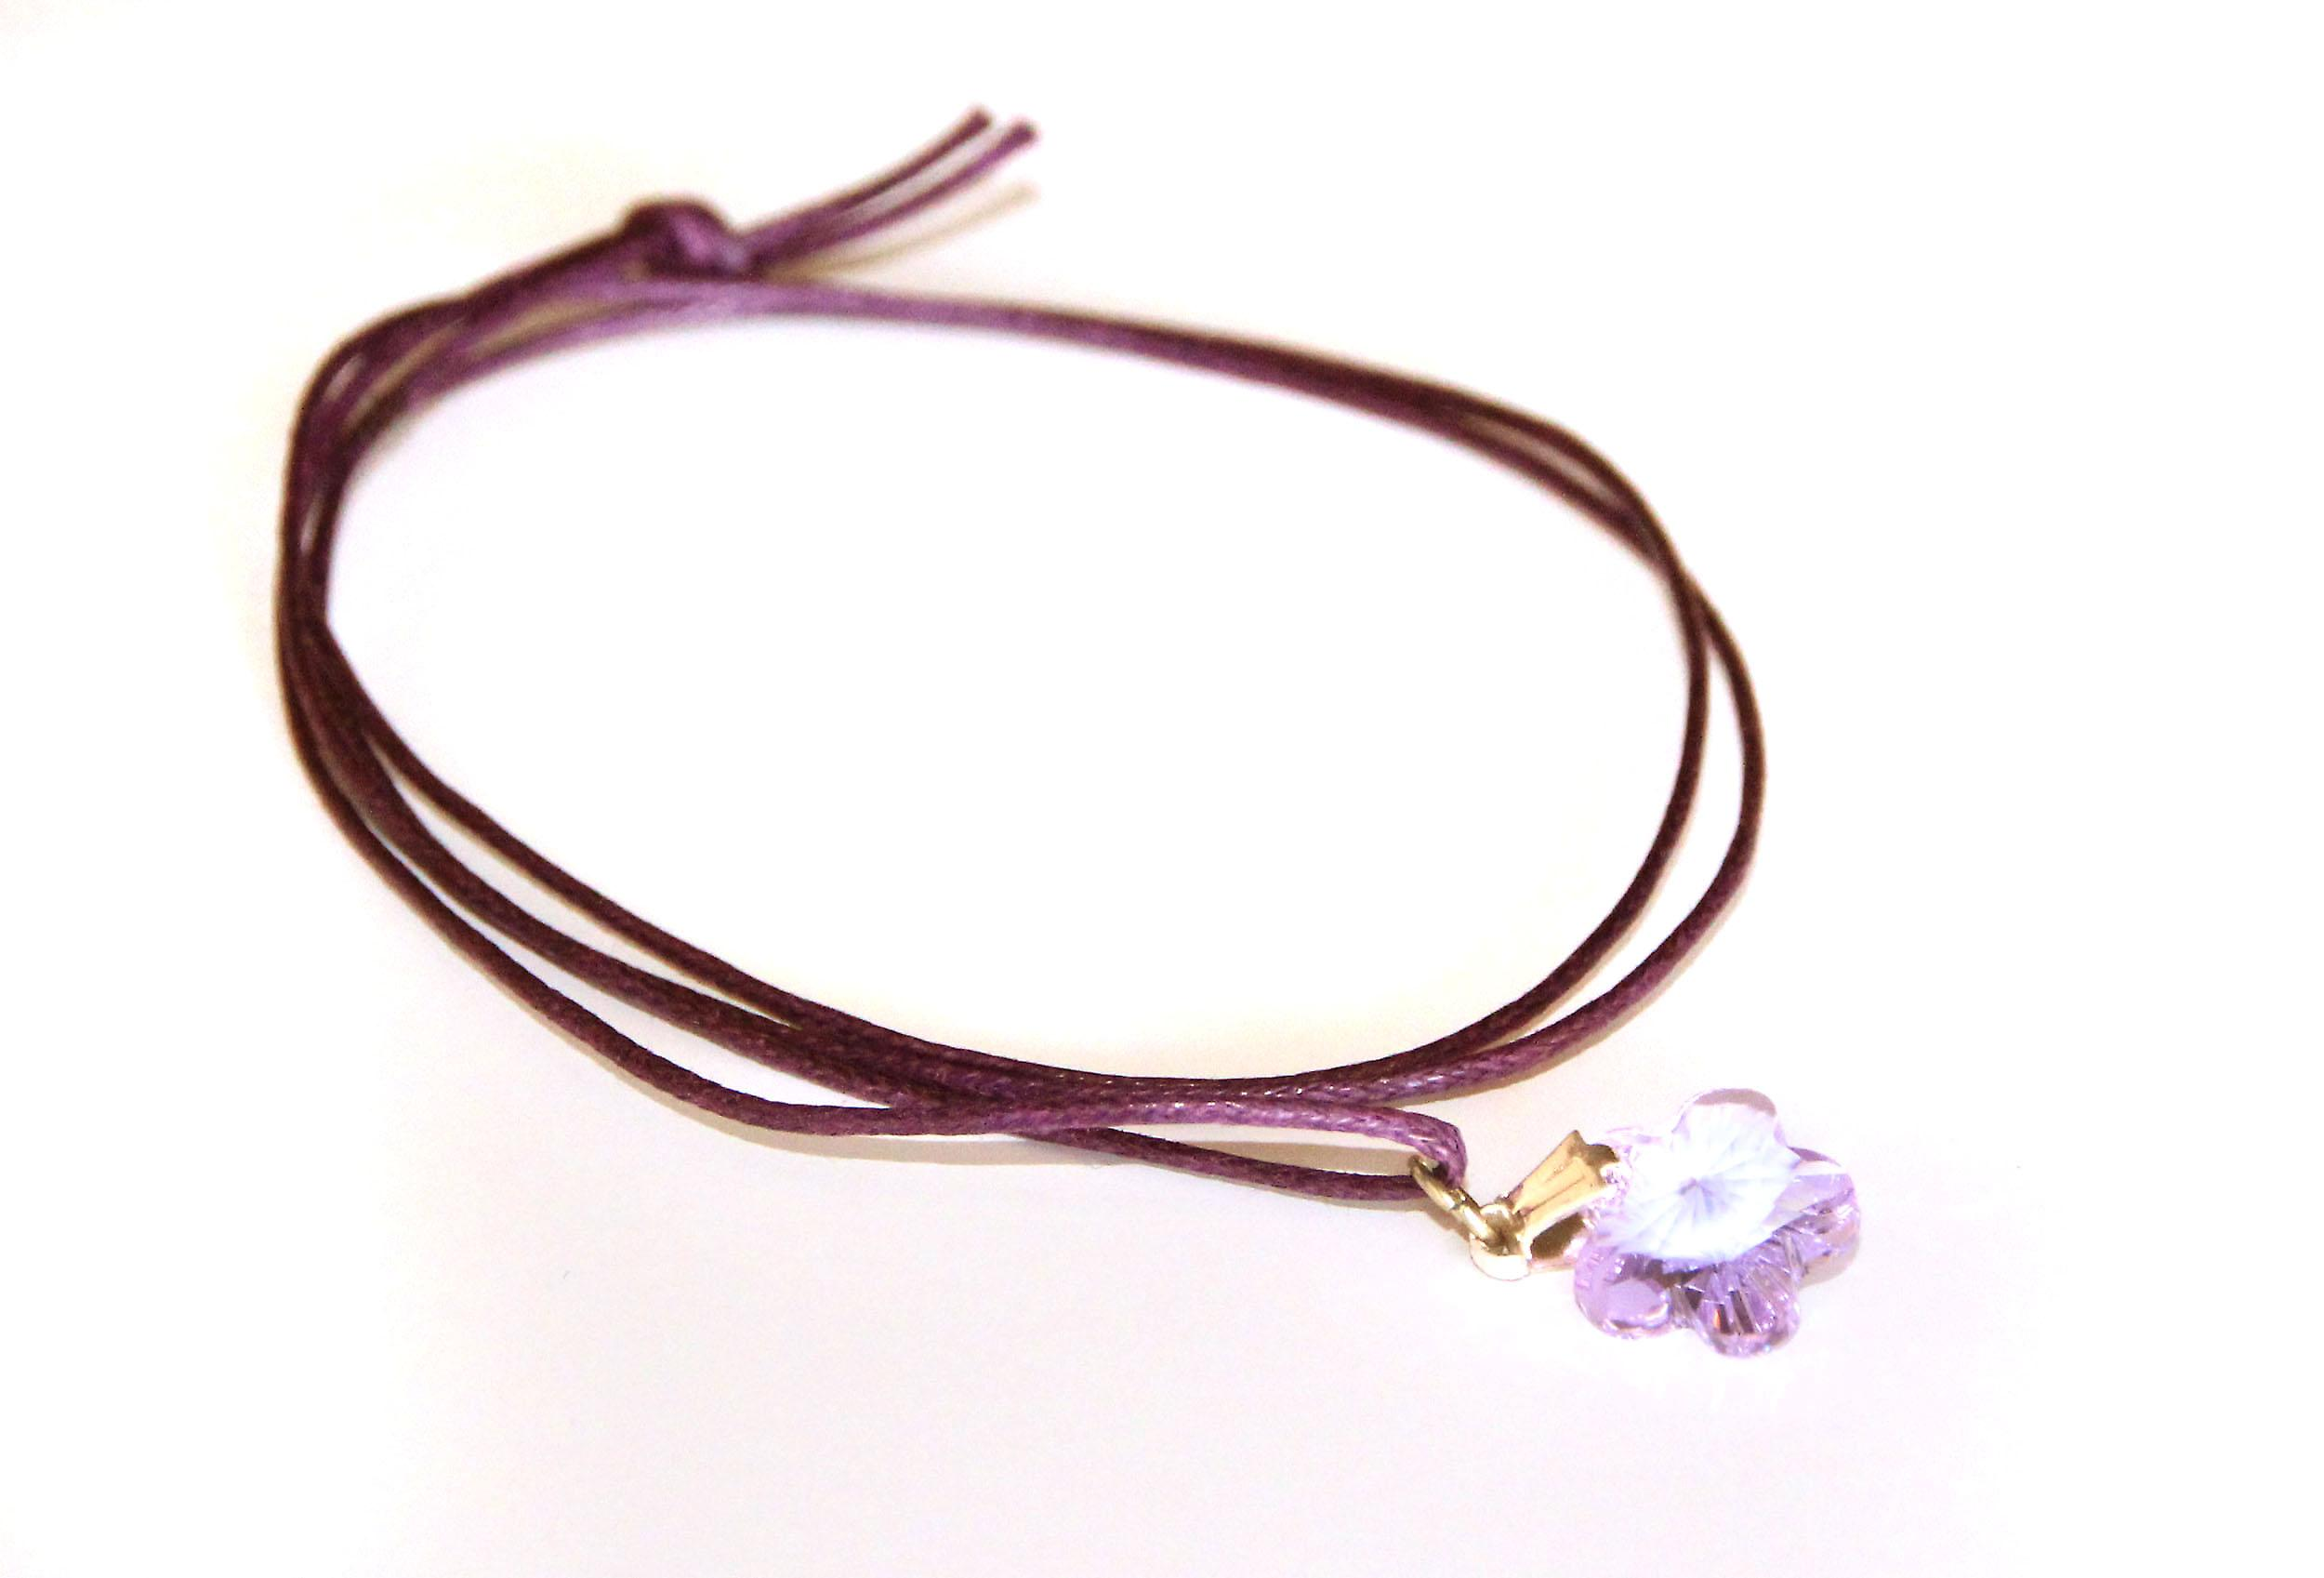 Waooh - Jewelry - Swarovski / pendant purple flower and waxed cord